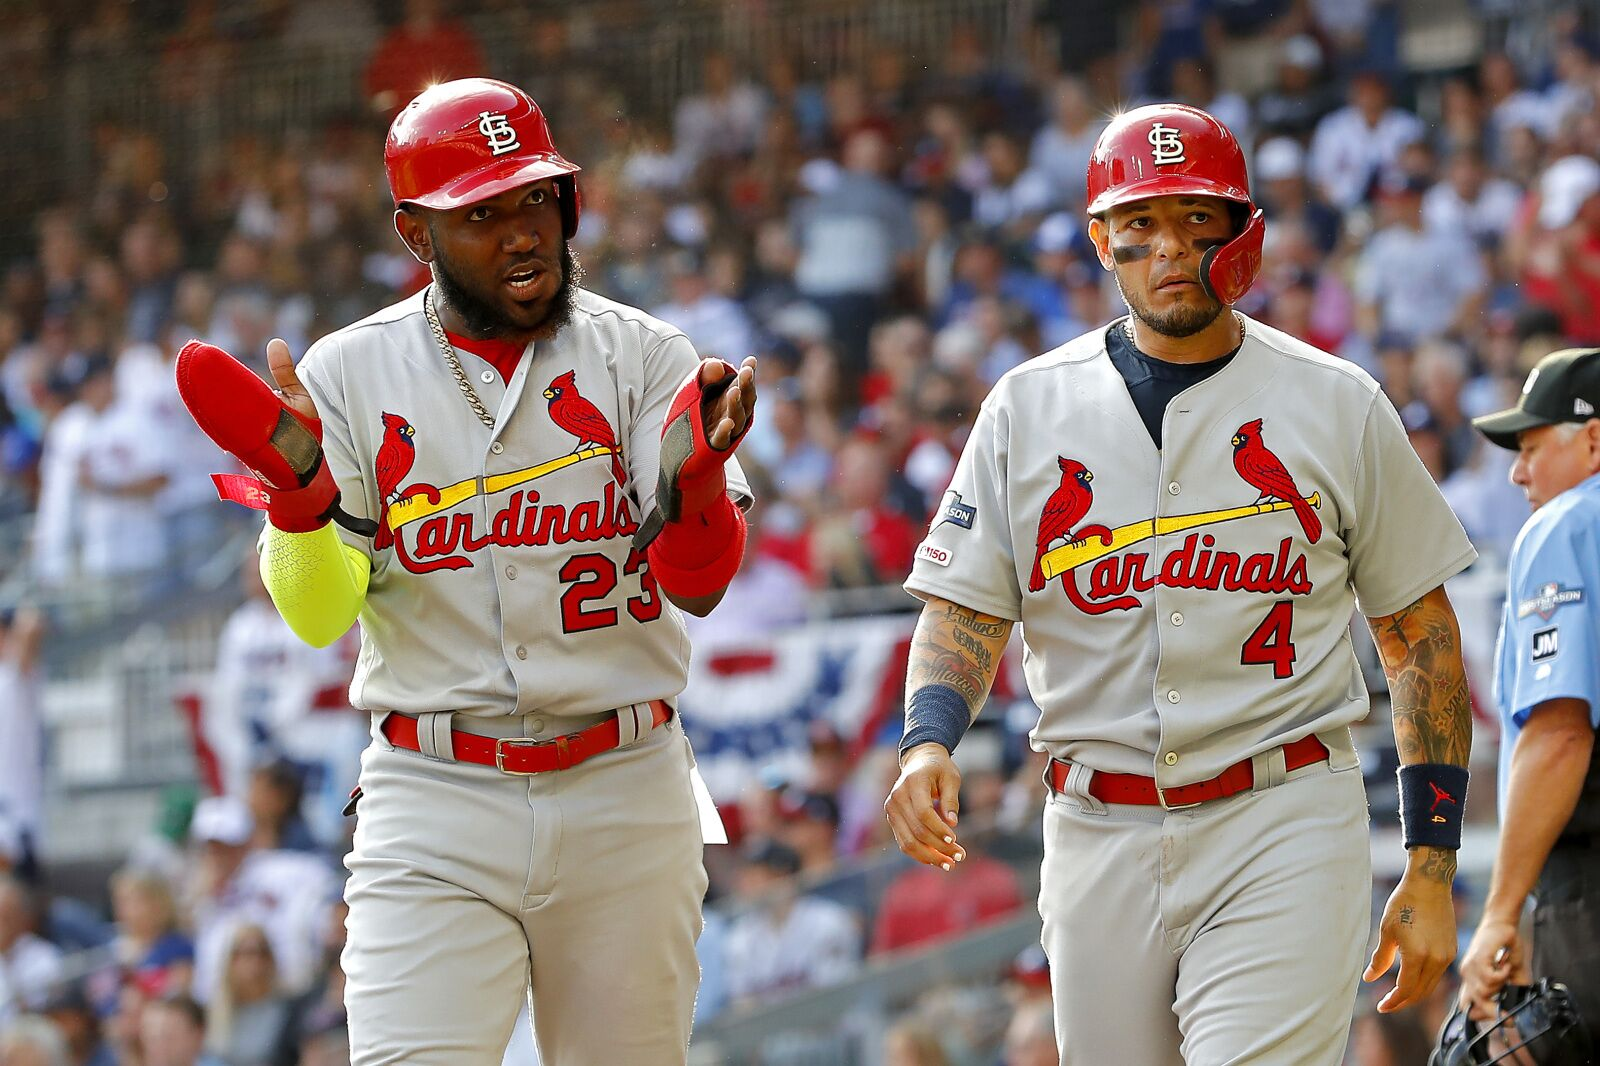 Cardinals score 10 runs in comically-bad first inning by Braves in Game 5